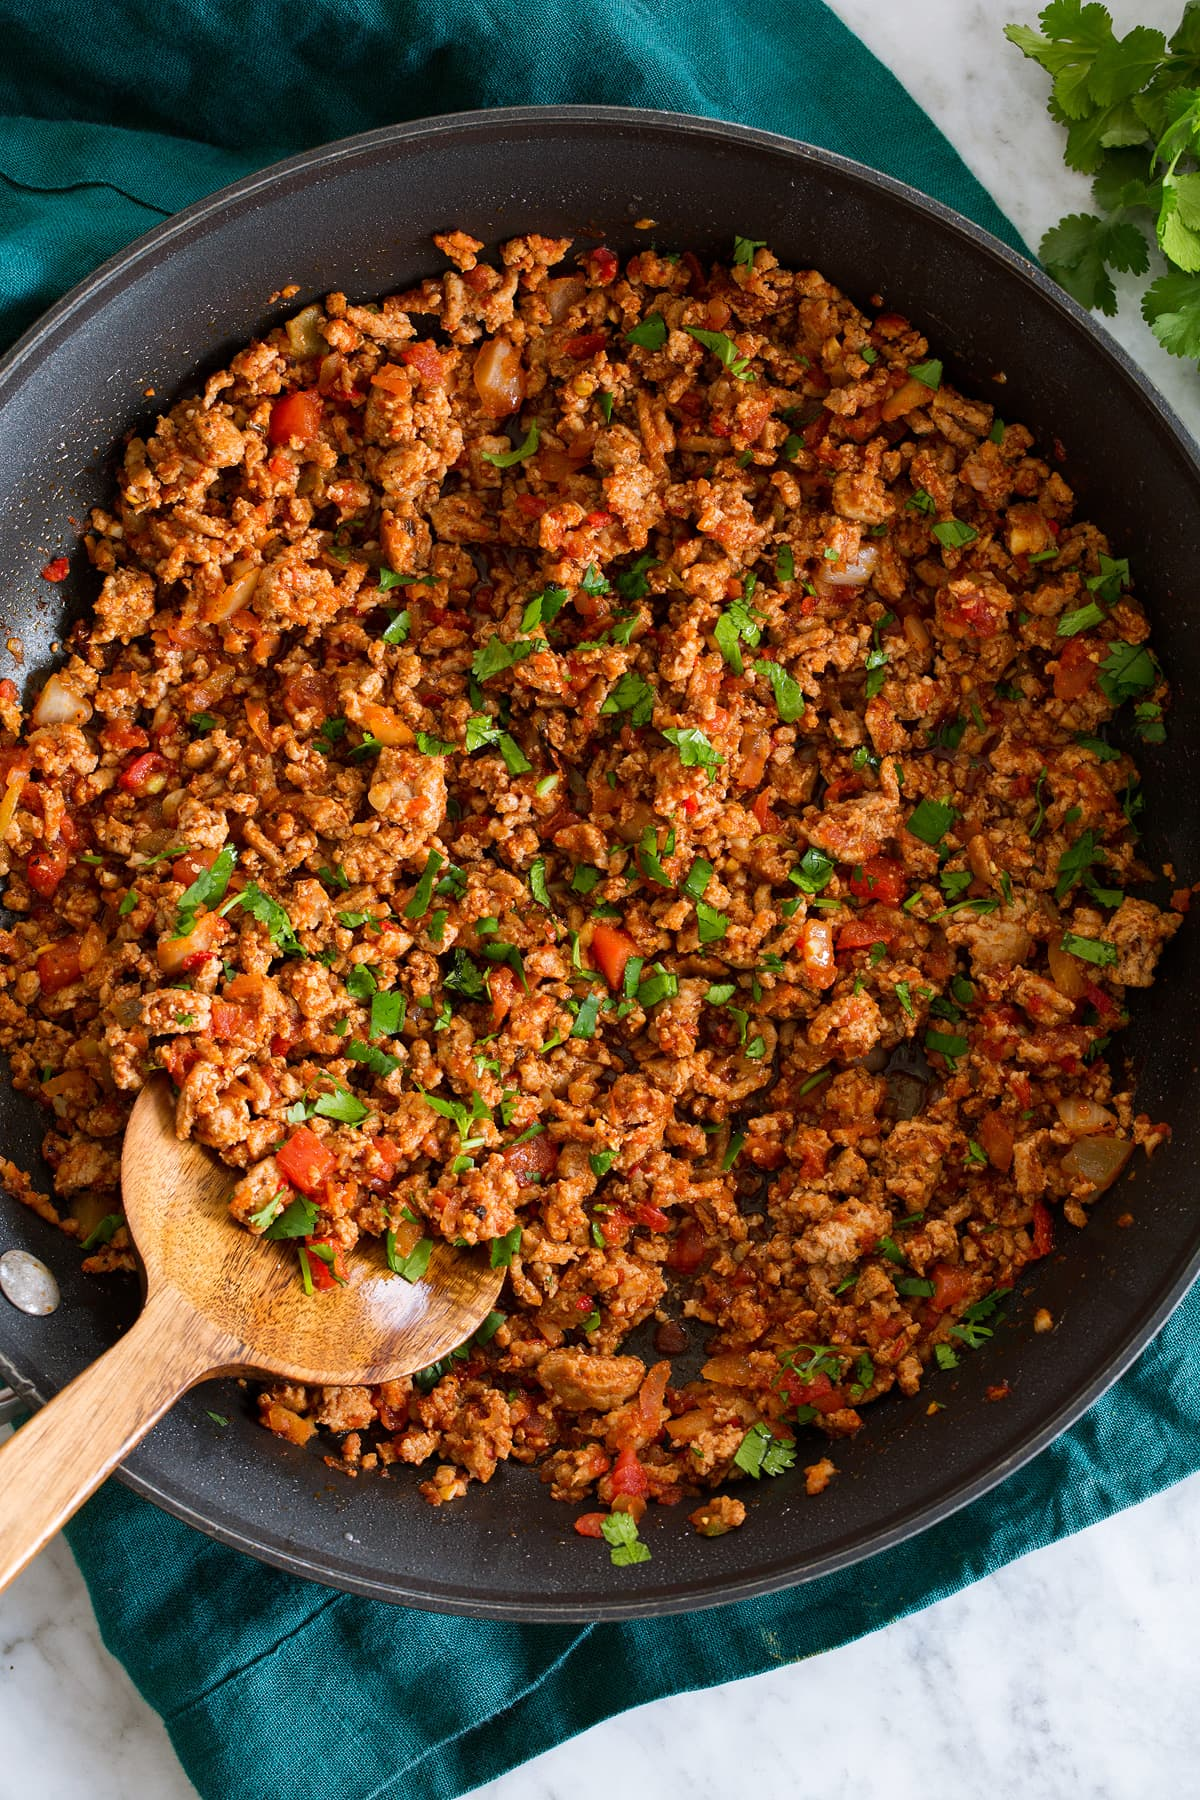 Photo: Ground turkey taco meat in a large black skillet shown from above.